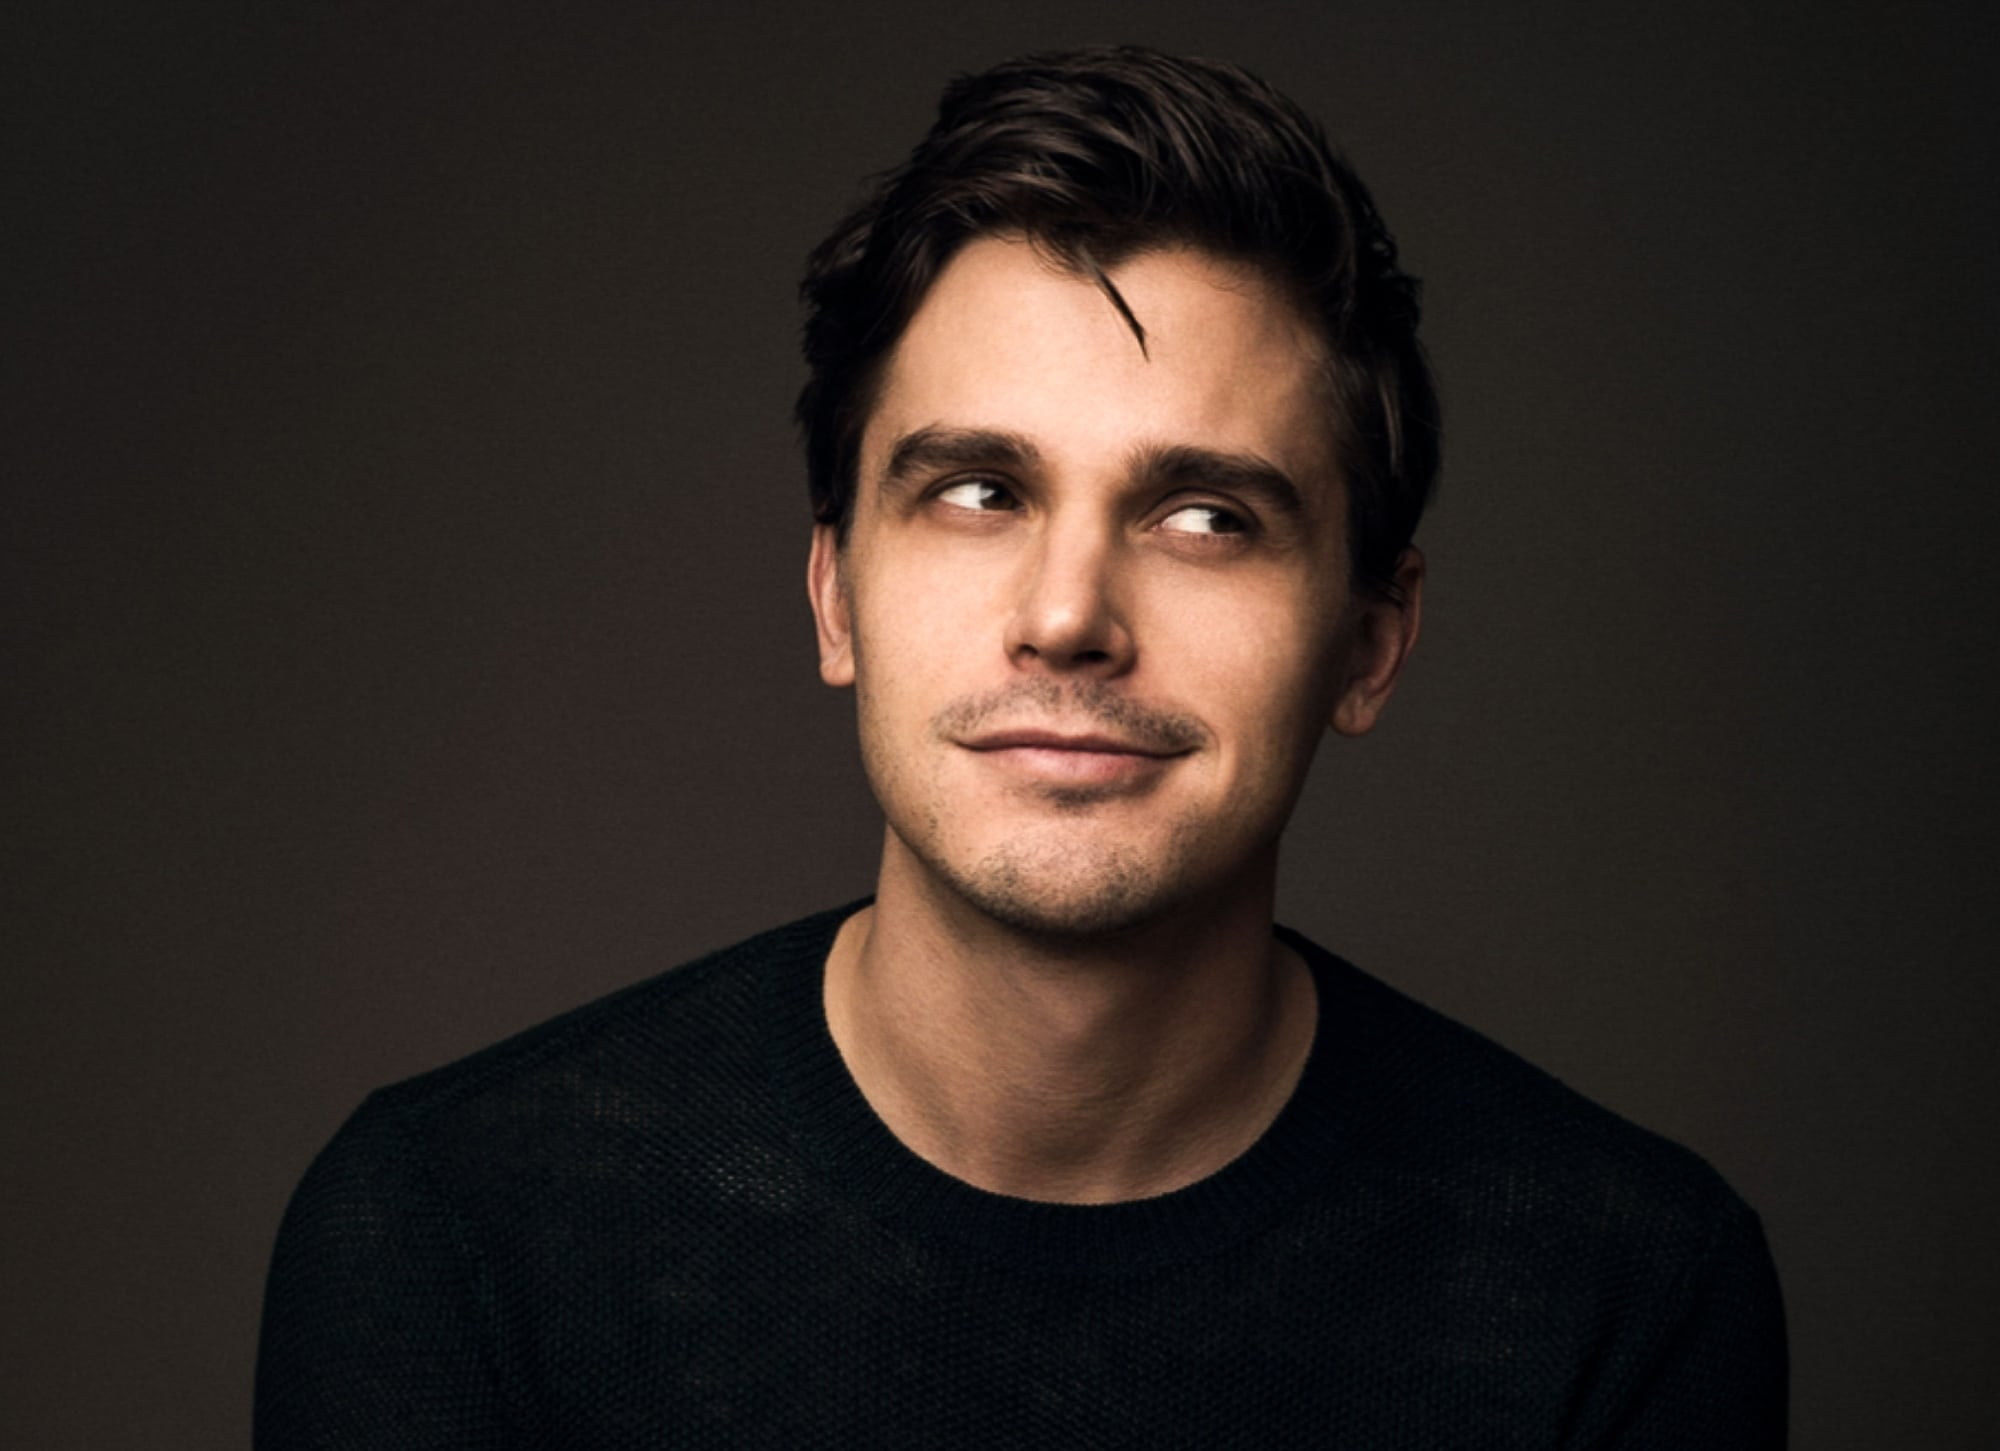 'Queer Eye' star Antoni Porowski